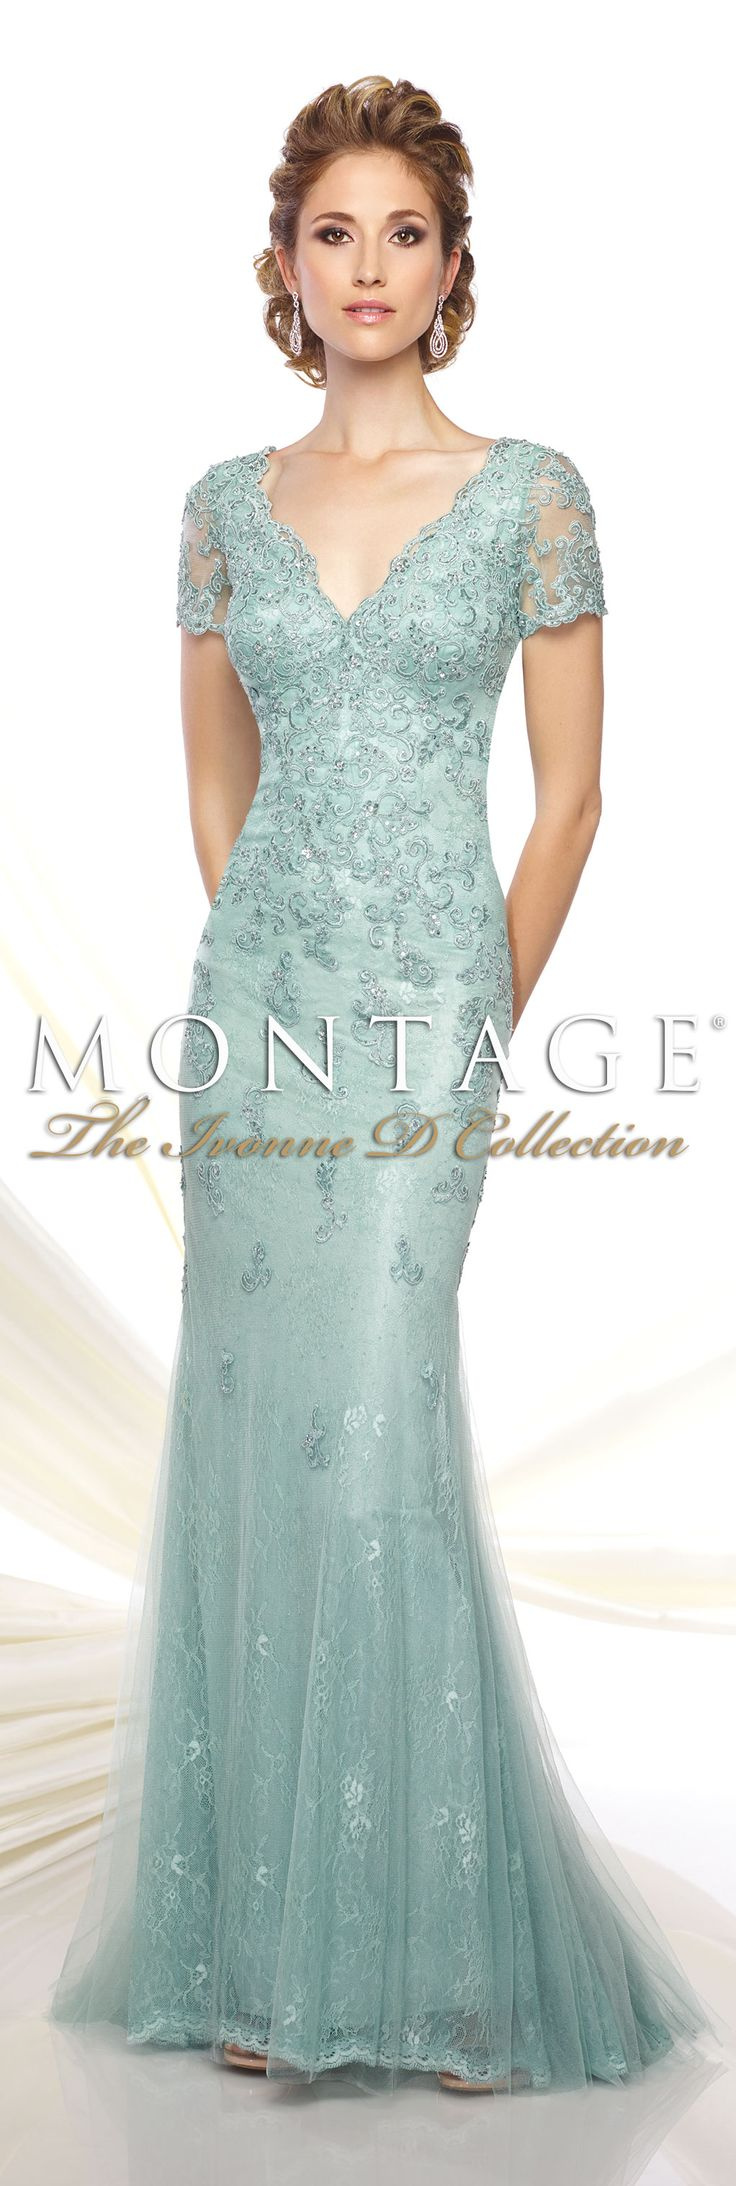 Tips for Mother of the Bride Evening Dresses Evening Gowns - oukas.info